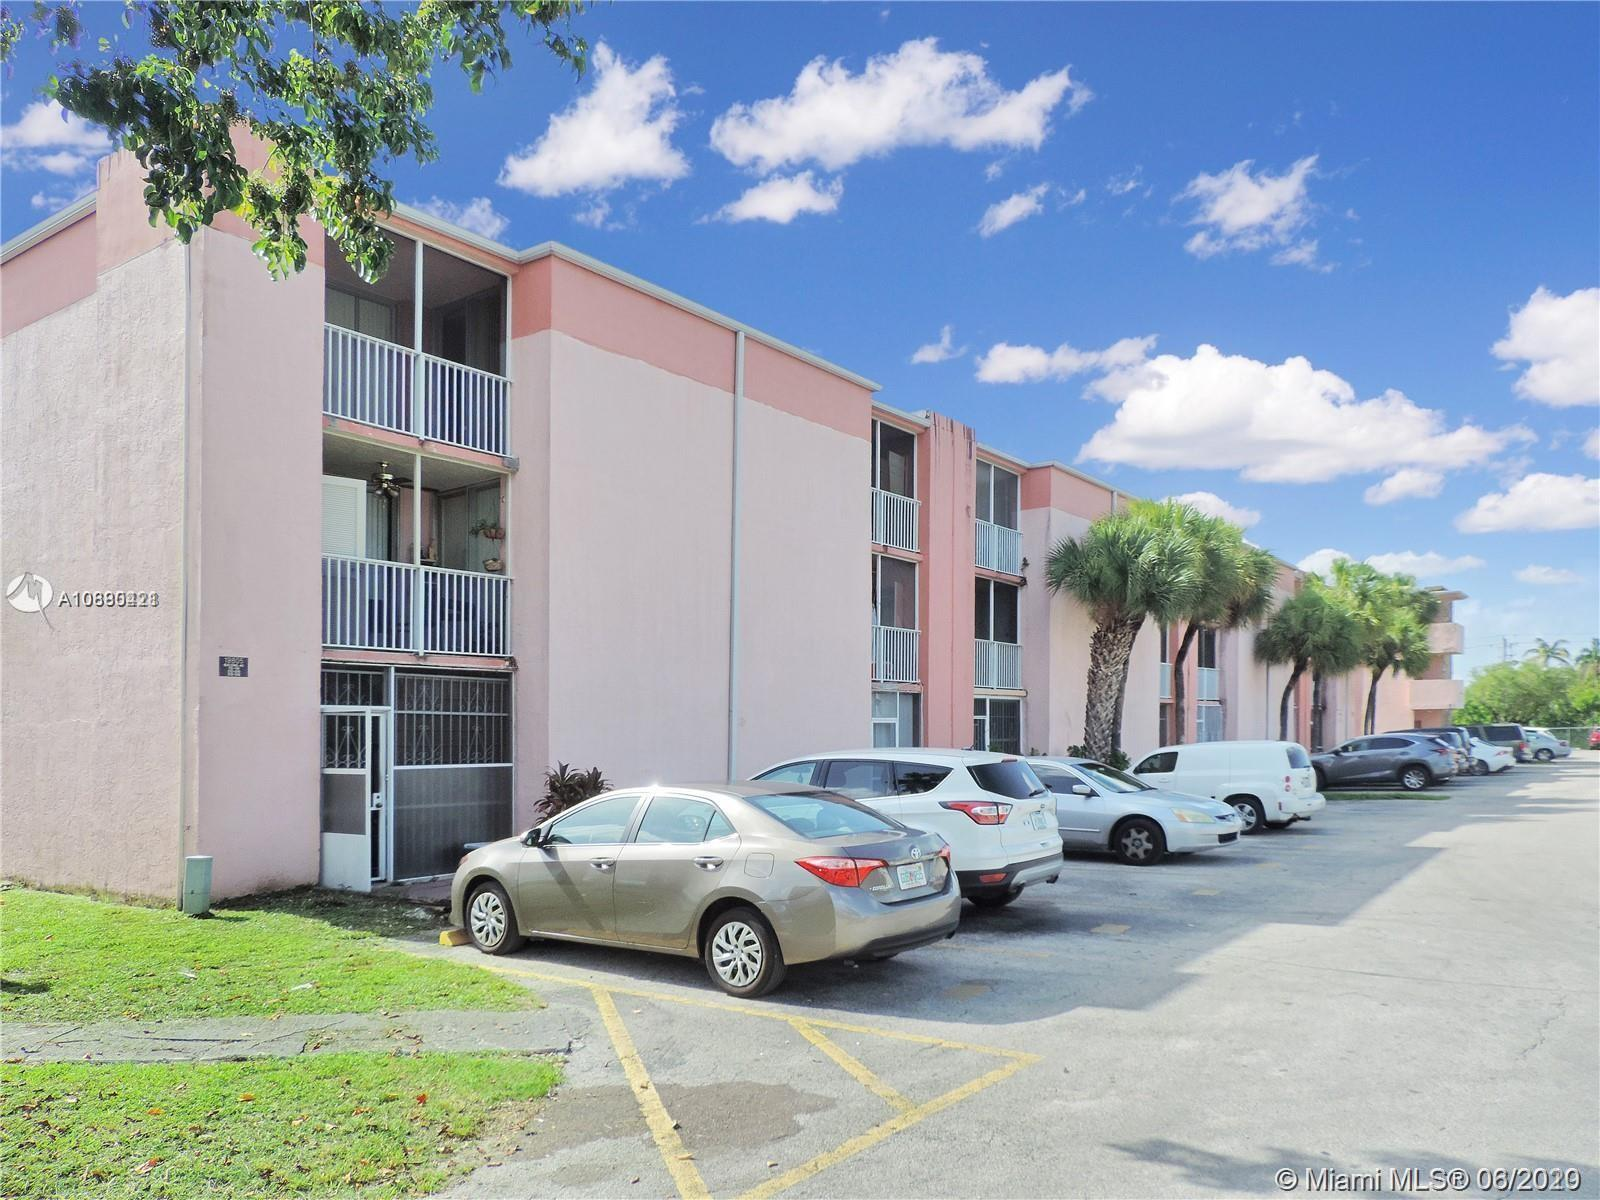 Great Portfolio sale of 11 Units locate close to Southland Mall with easy access to US1 and Florida Turnpike. All unit are 2 Bedroom 2 Baths 800 SQ FT and rented between $1,200.00 to $1,250.00 can be increase rent around 8% return. Some with a 1-year lease others Month to Month. 100% occupied for good tenants and high demand rental area. All unit are in average to good condition.